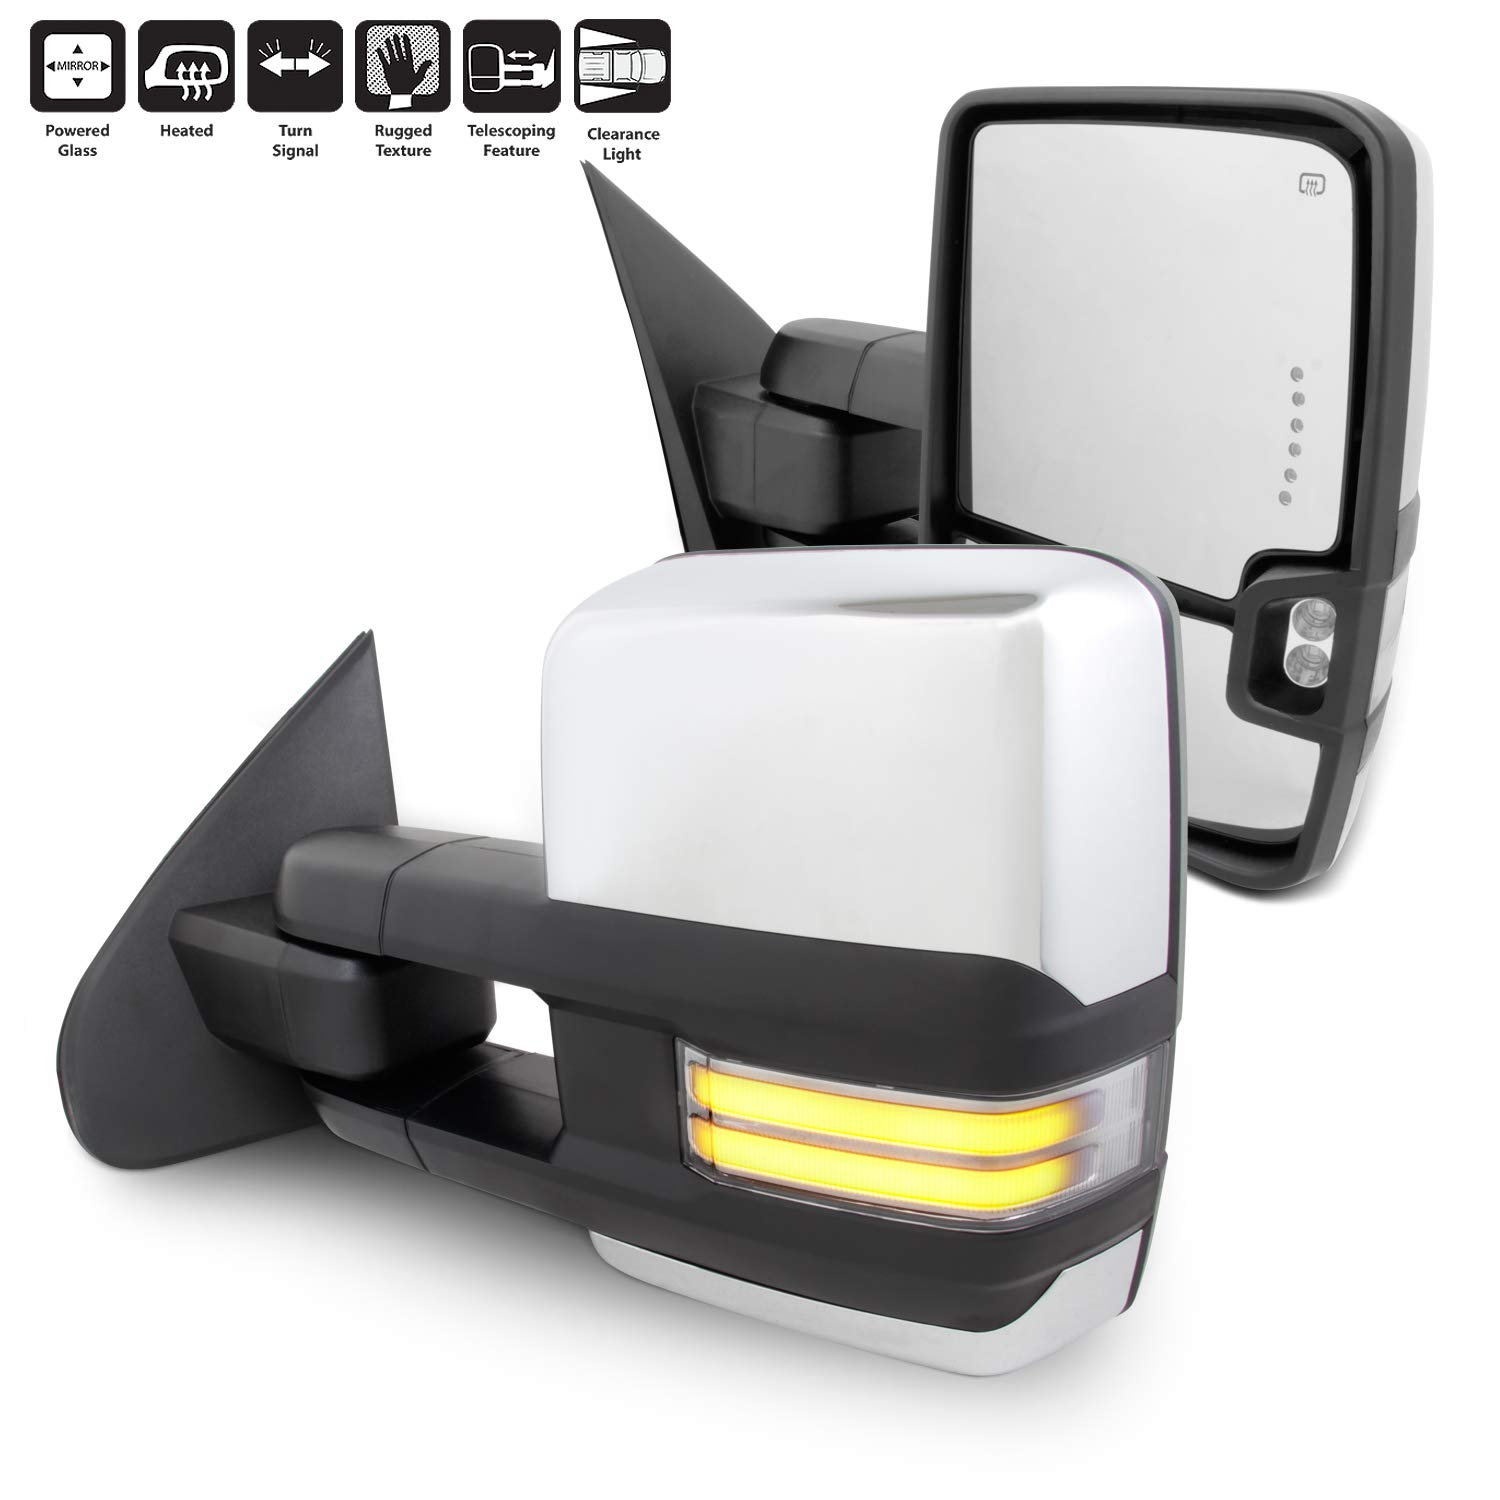 For 14-18 Silverado Sierra Pair of Powered + Heated Glass + Sequential Turn Signal Side Chrome Towing Mirrors